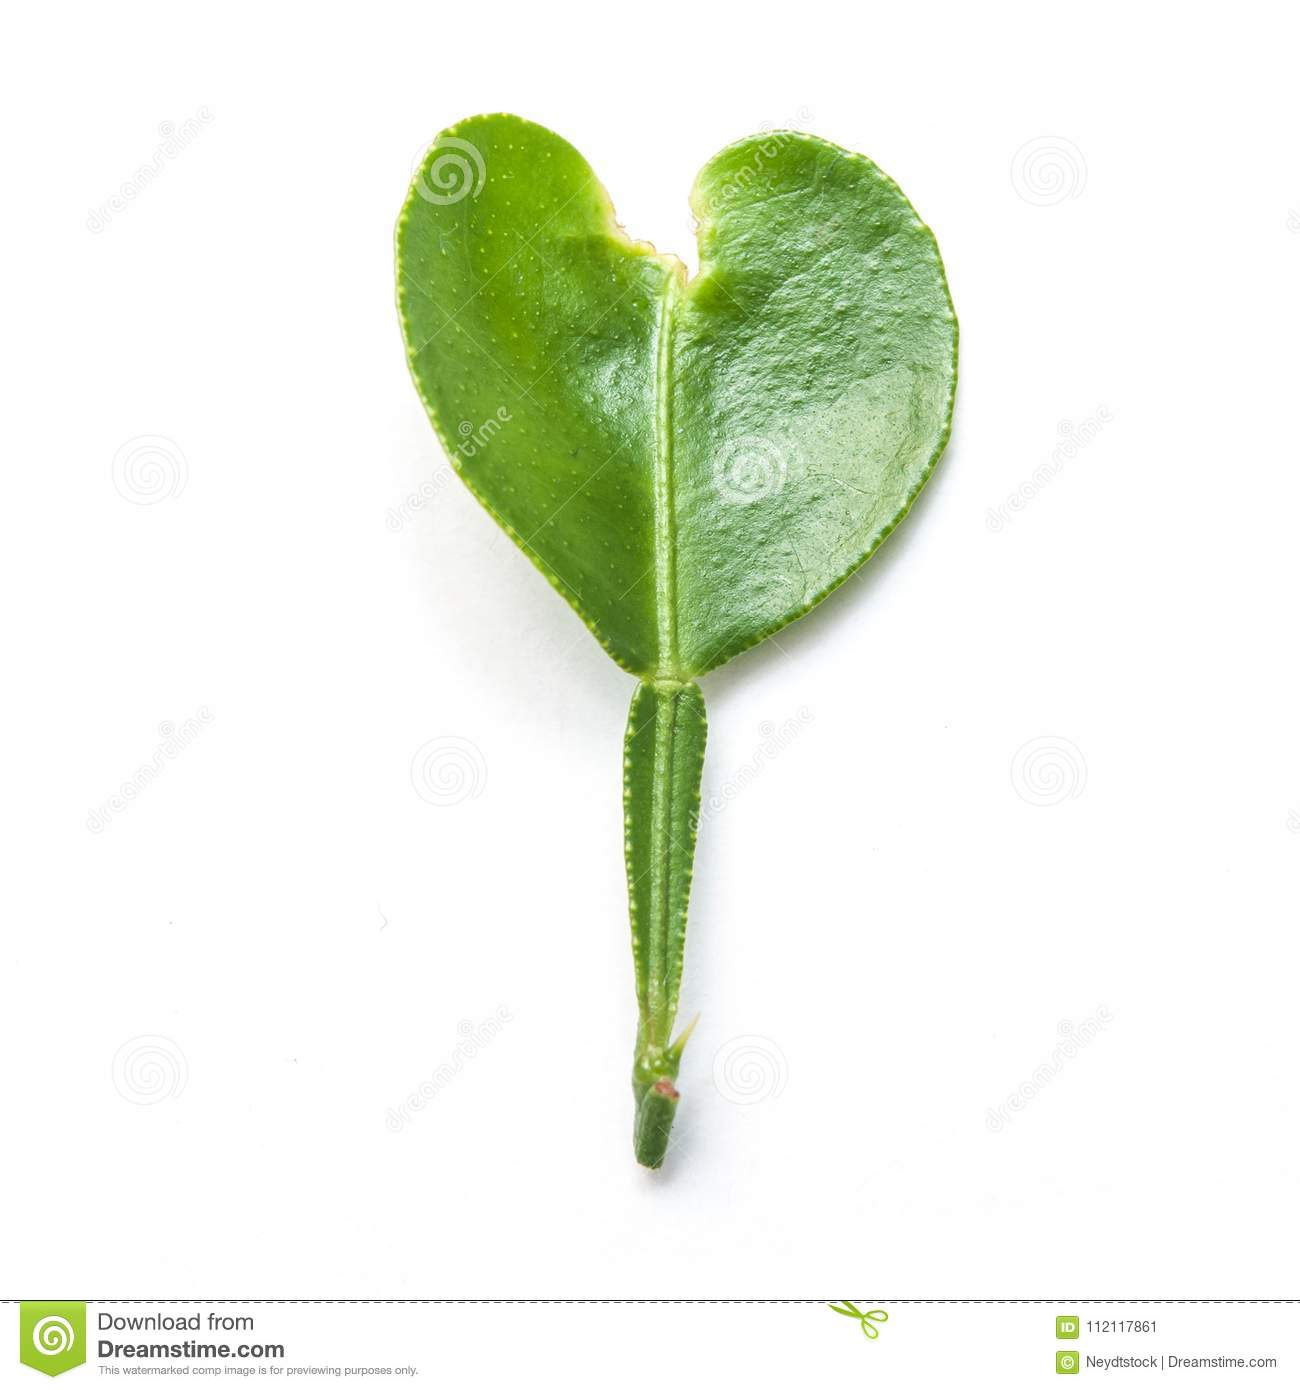 Orange Tree Leaf In Shaped Heart On White Background Stock Image